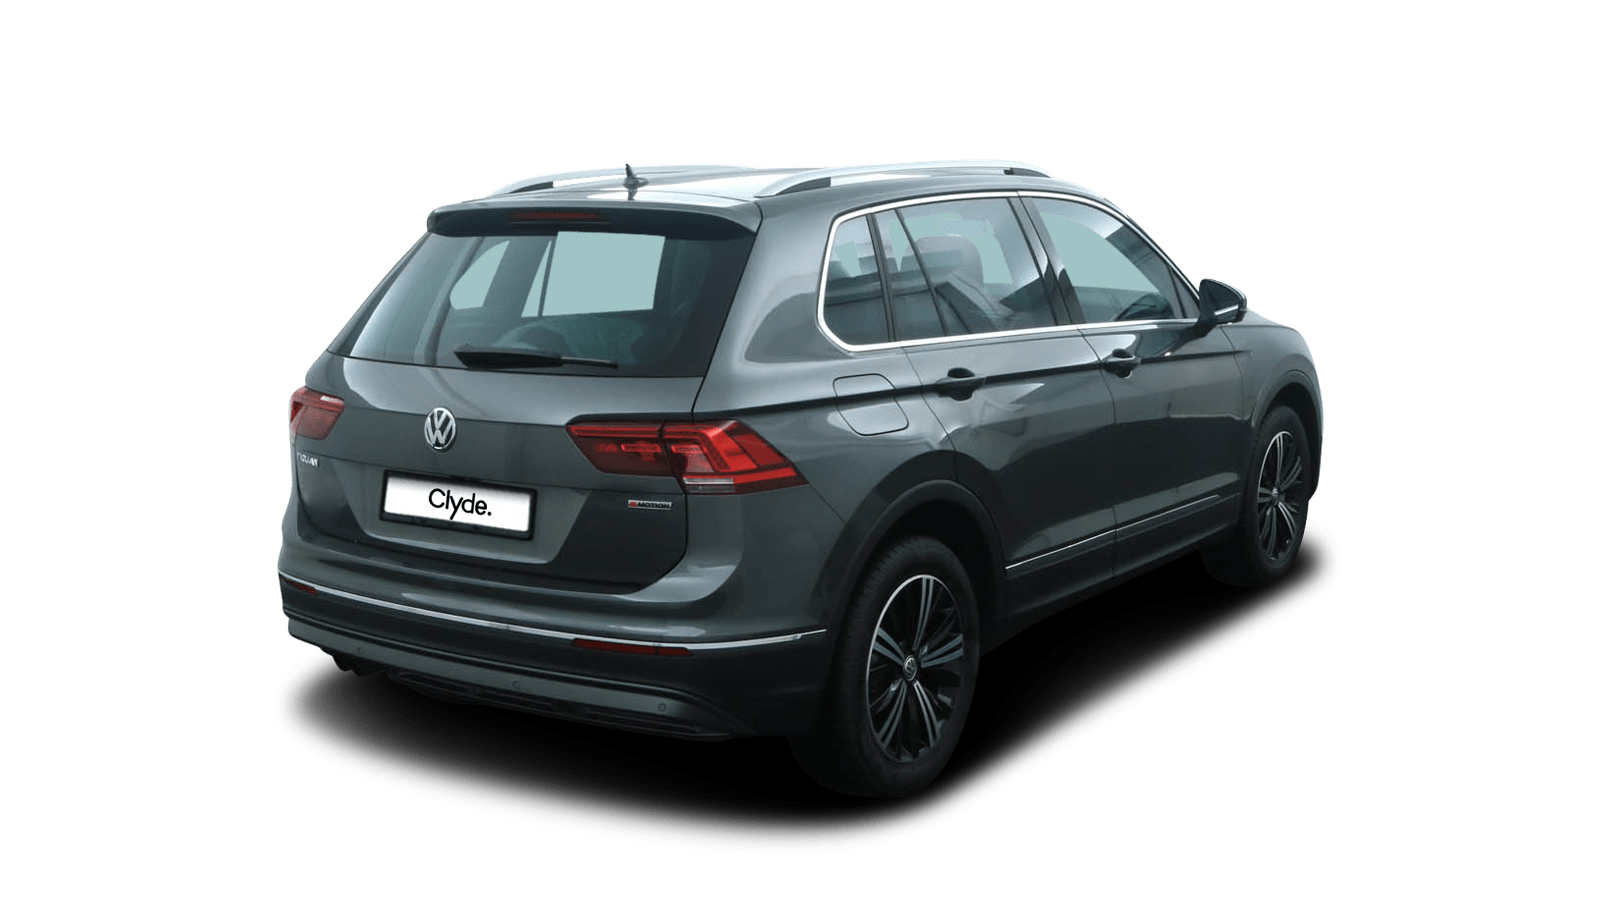 VW Tiguan Grey back - Clyde car subscription